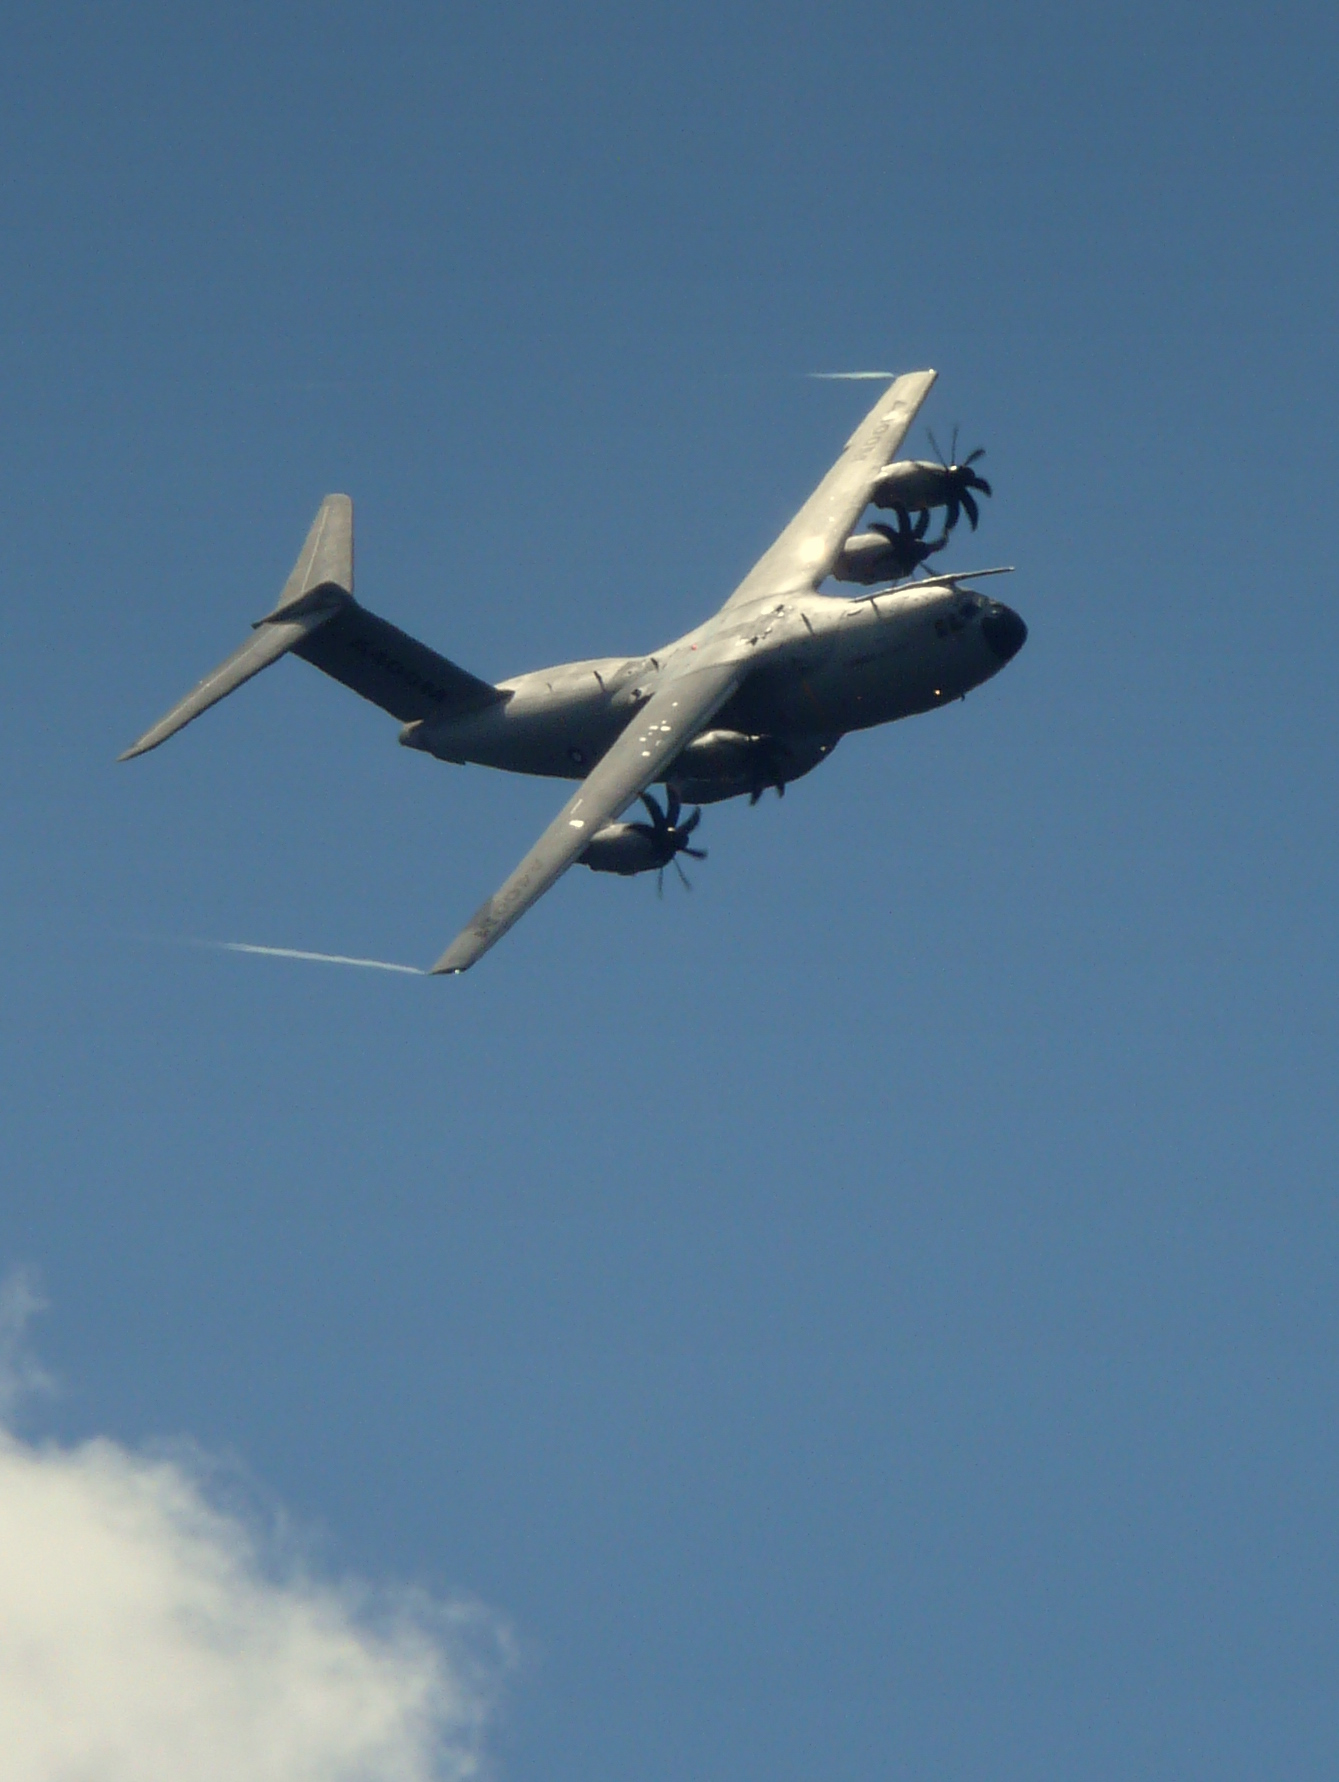 A400M at Farnborough Airshow 2010